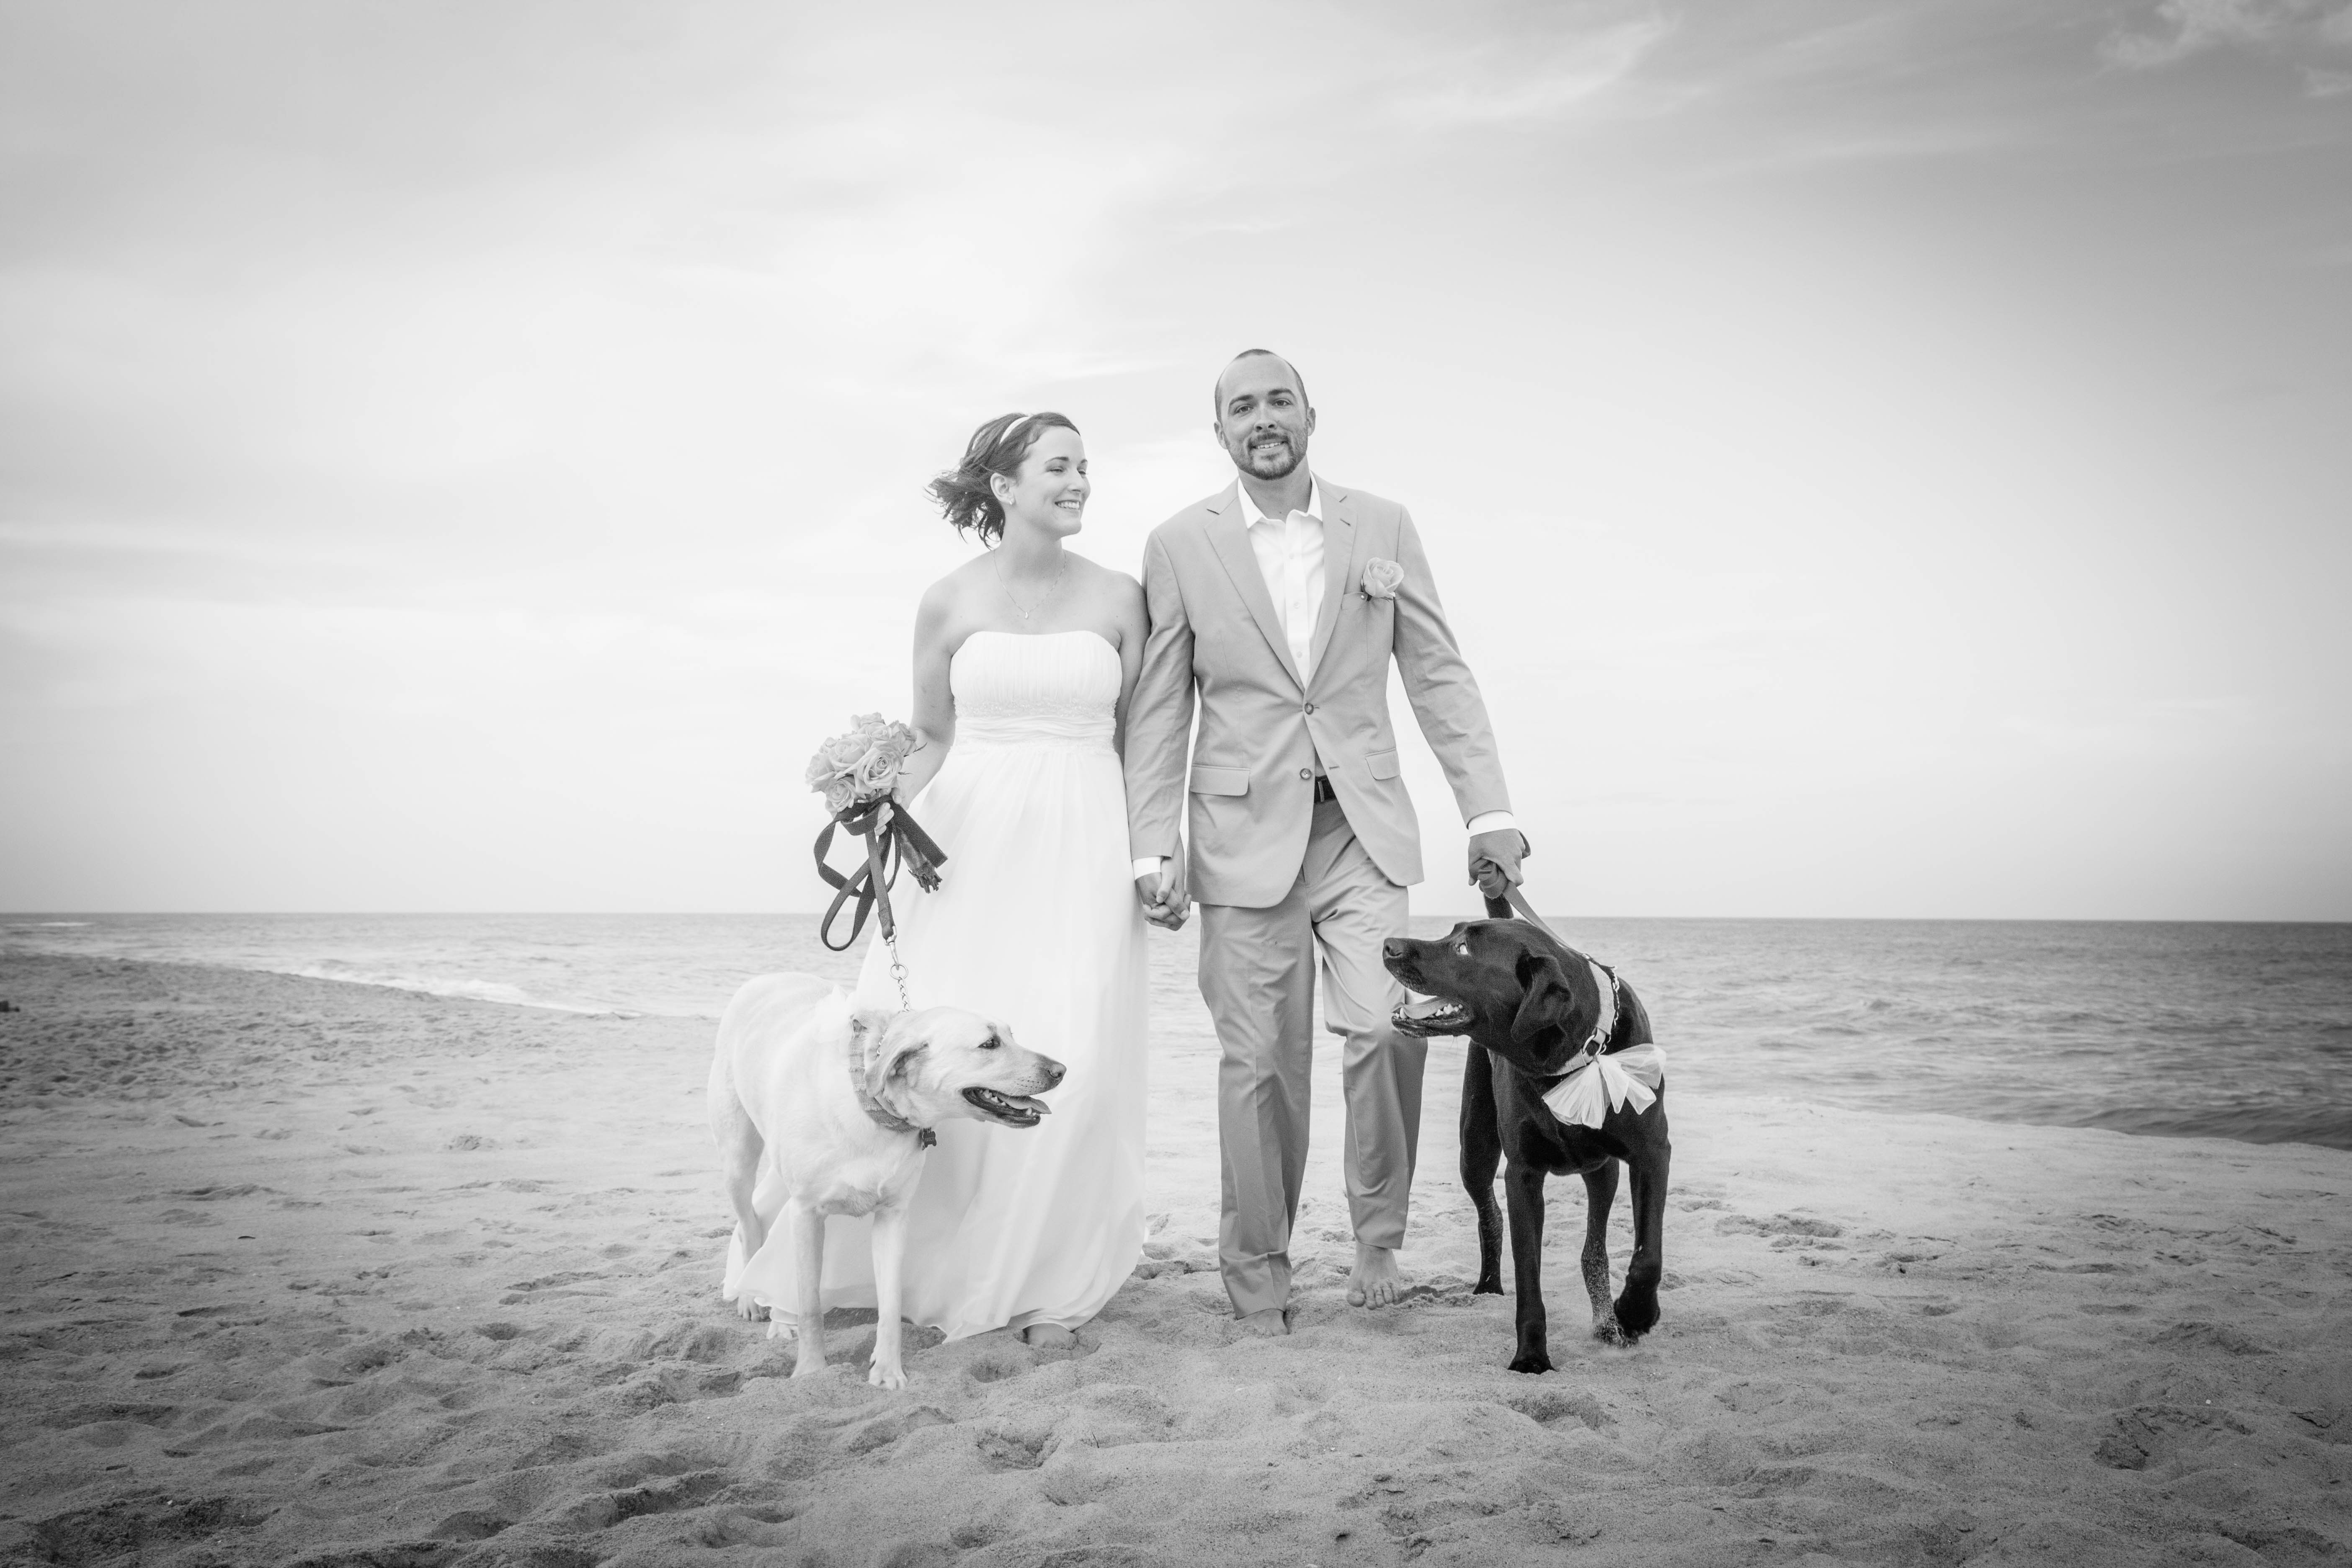 Kristen and Kyle celebrate their wedding day, along with Krisco and Skillet who certainly would be nowhere else on that special day.  Photo Credit: Sarah D'Ambra Photography